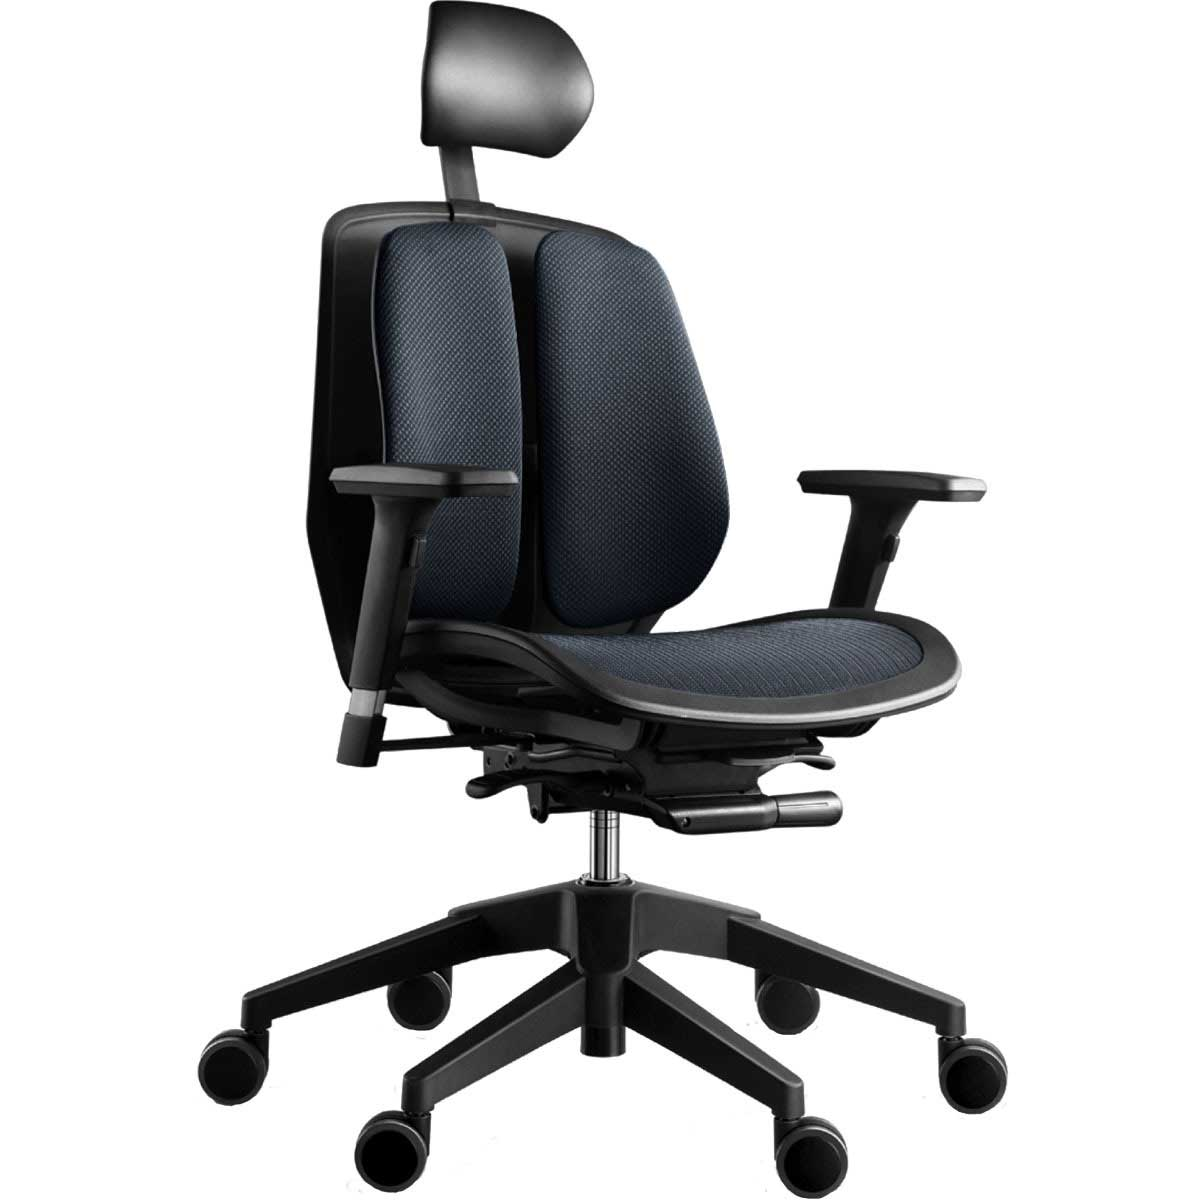 Ergonomic Home Furniture Fascinating With Ergonomic Executive Office Chair Pictures